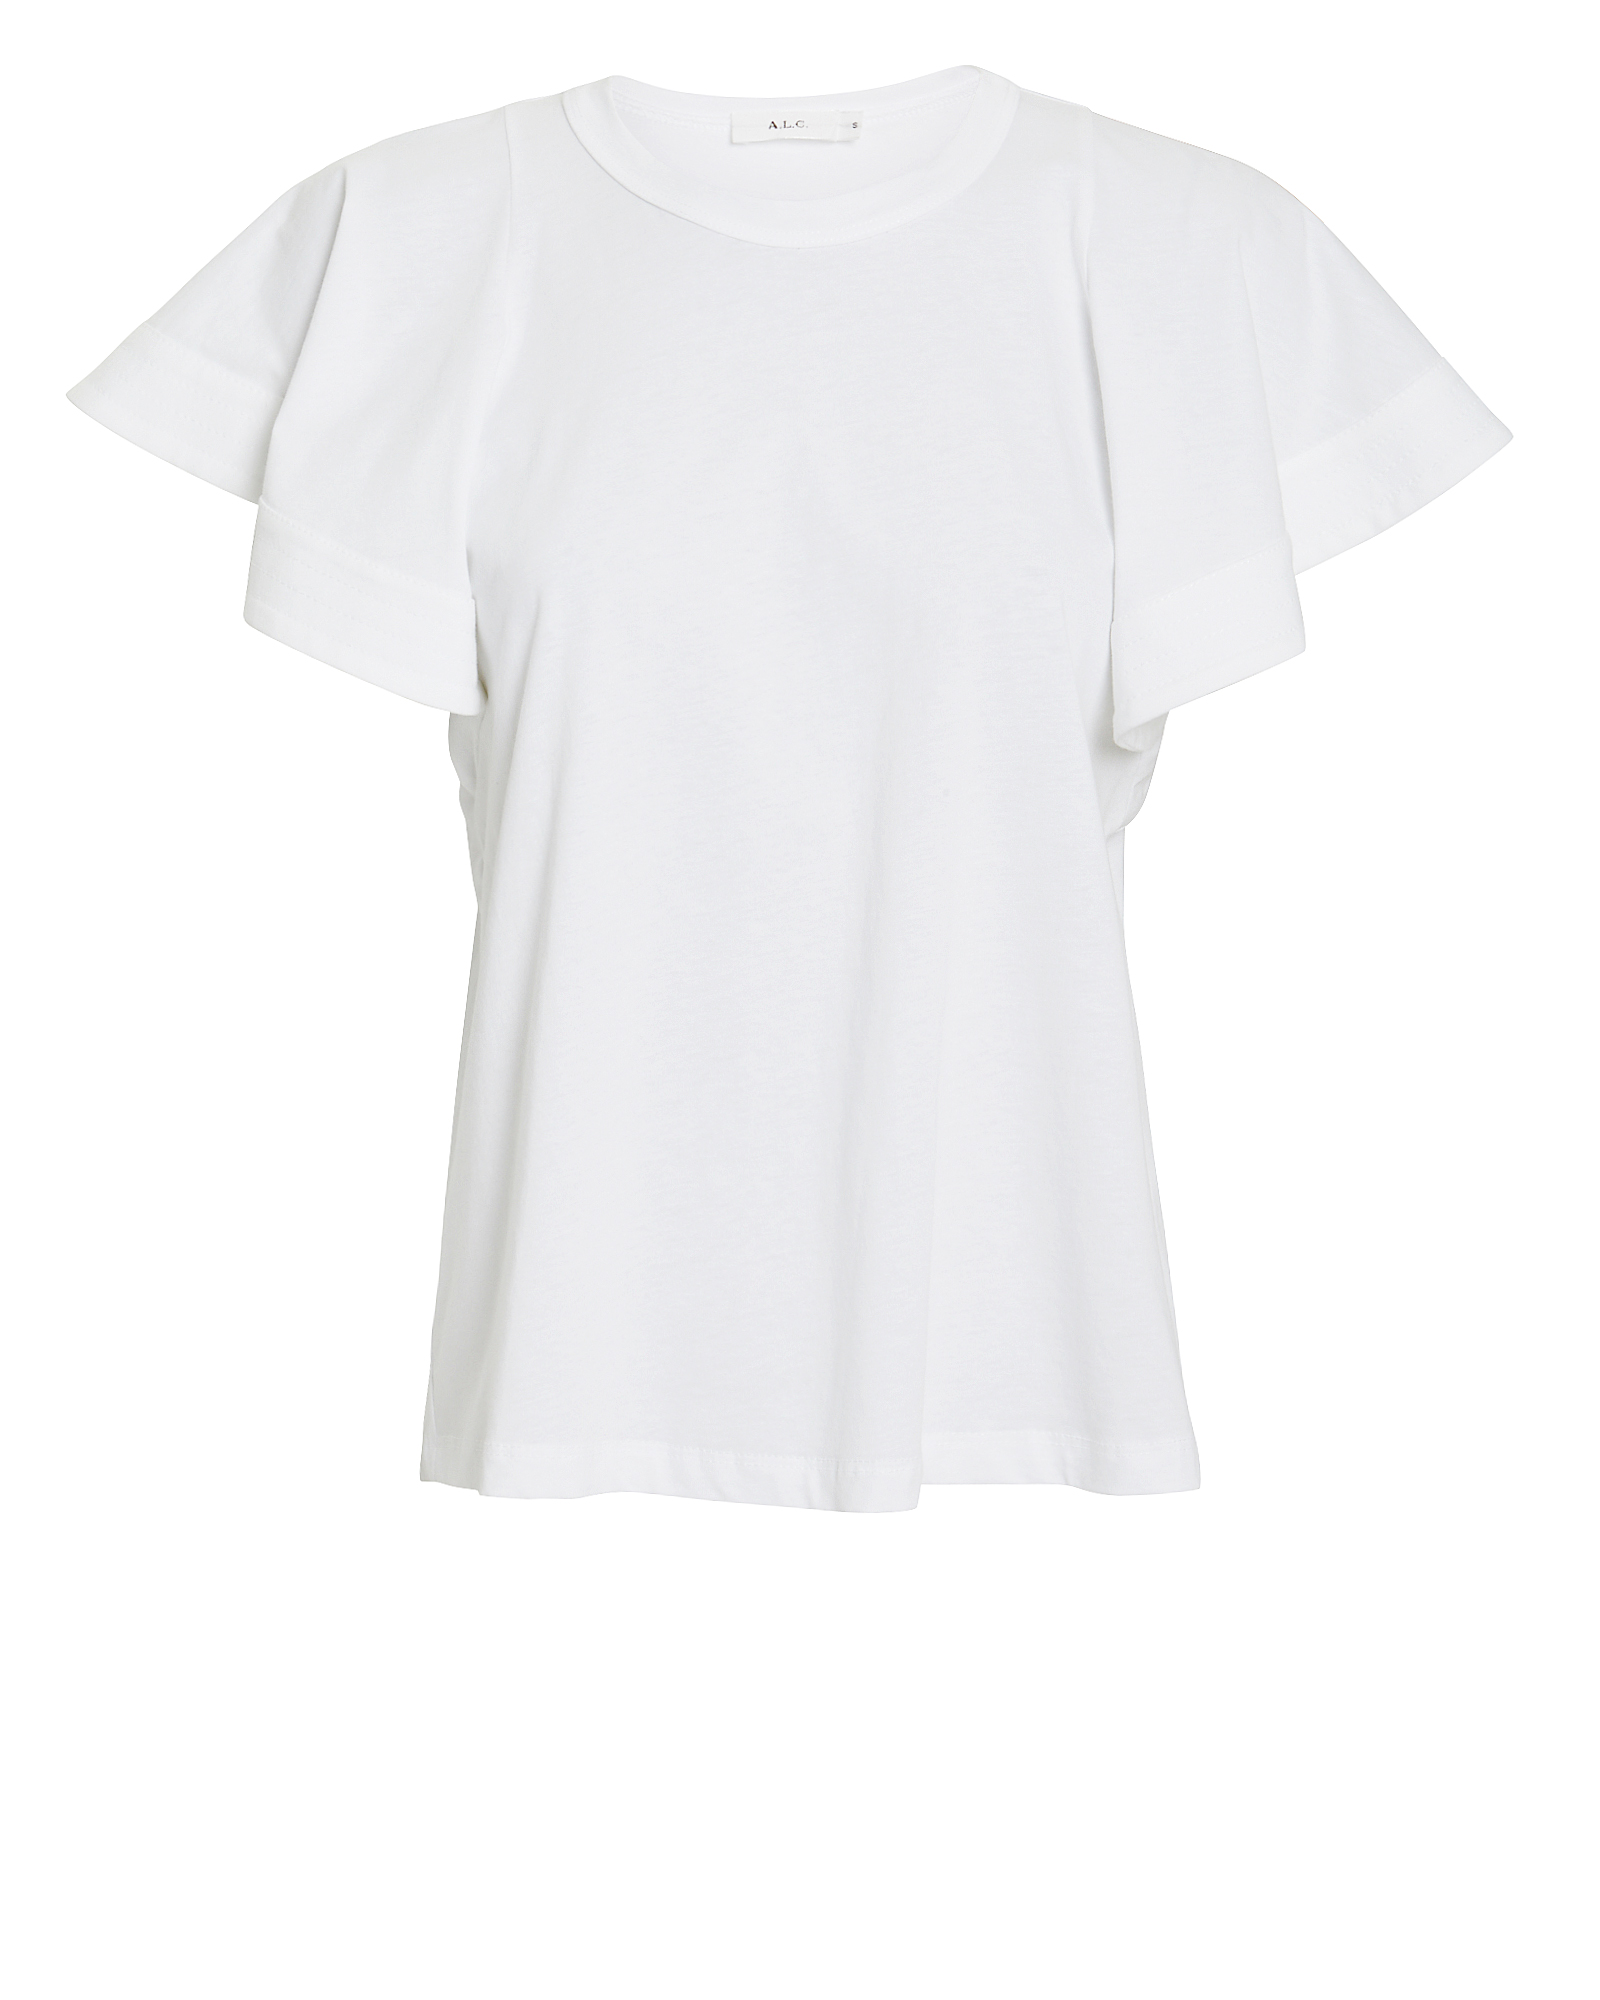 A.l.c T-shirts A.L.C. CARRIE RUFFLED JERSEY T-SHIRT  WHITE S